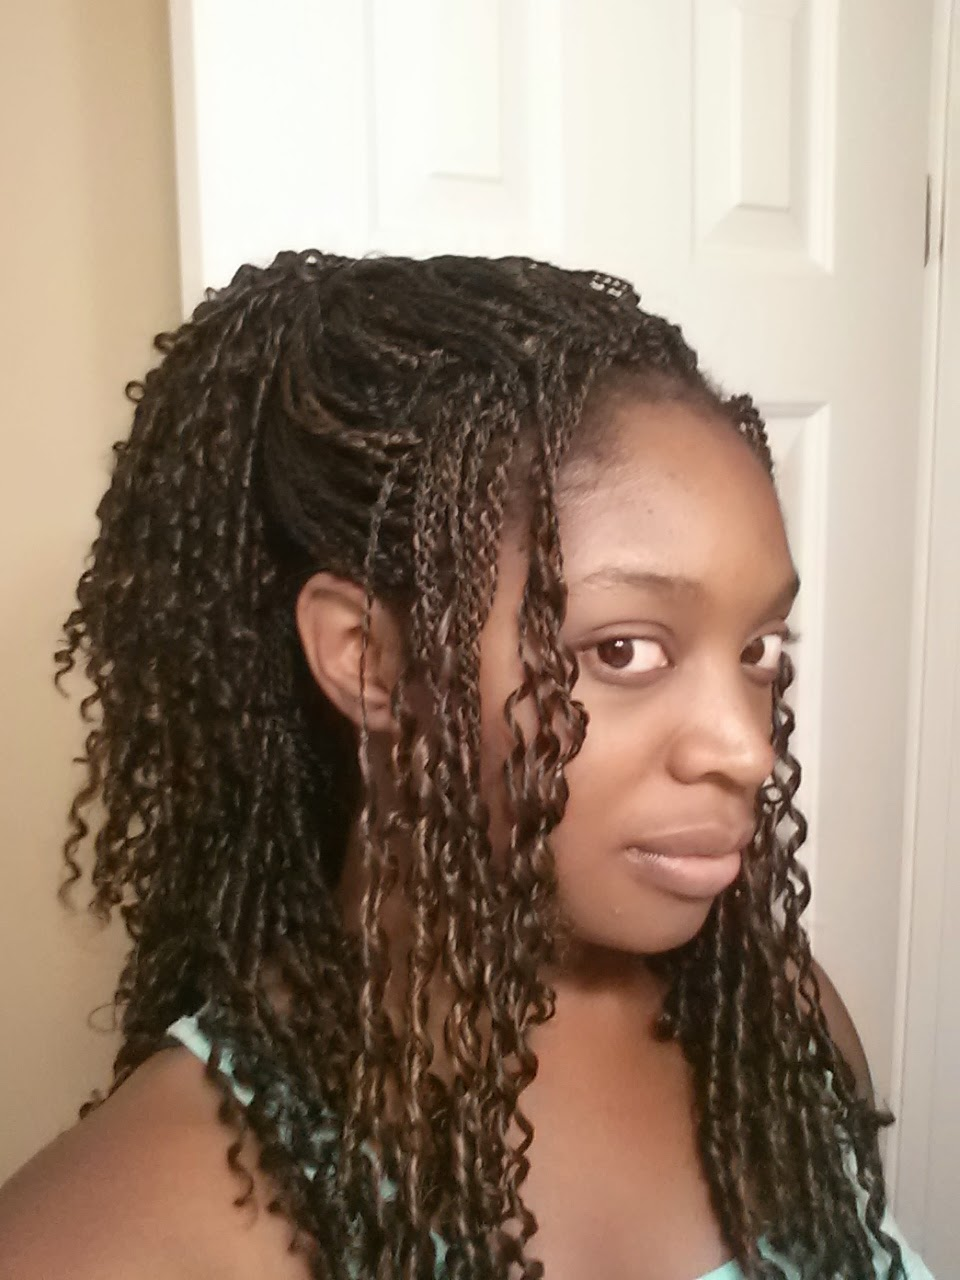 Crochet Box Braids Pre Braided Hair : Crochet Pre Braided Hair with Braids